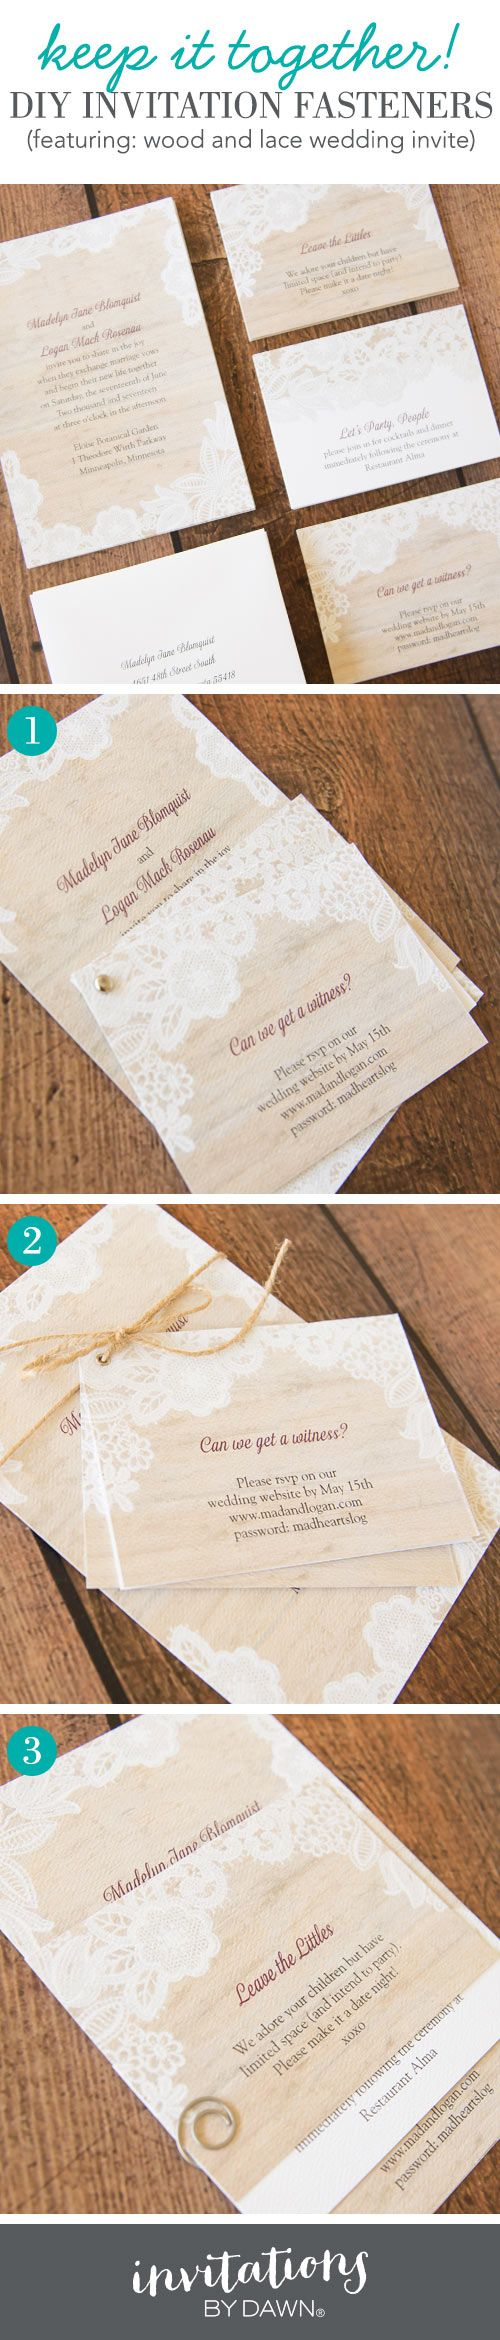 42 best wedding diy images on pinterest wedding stationery diy wedding invitation fasteners stopboris Image collections